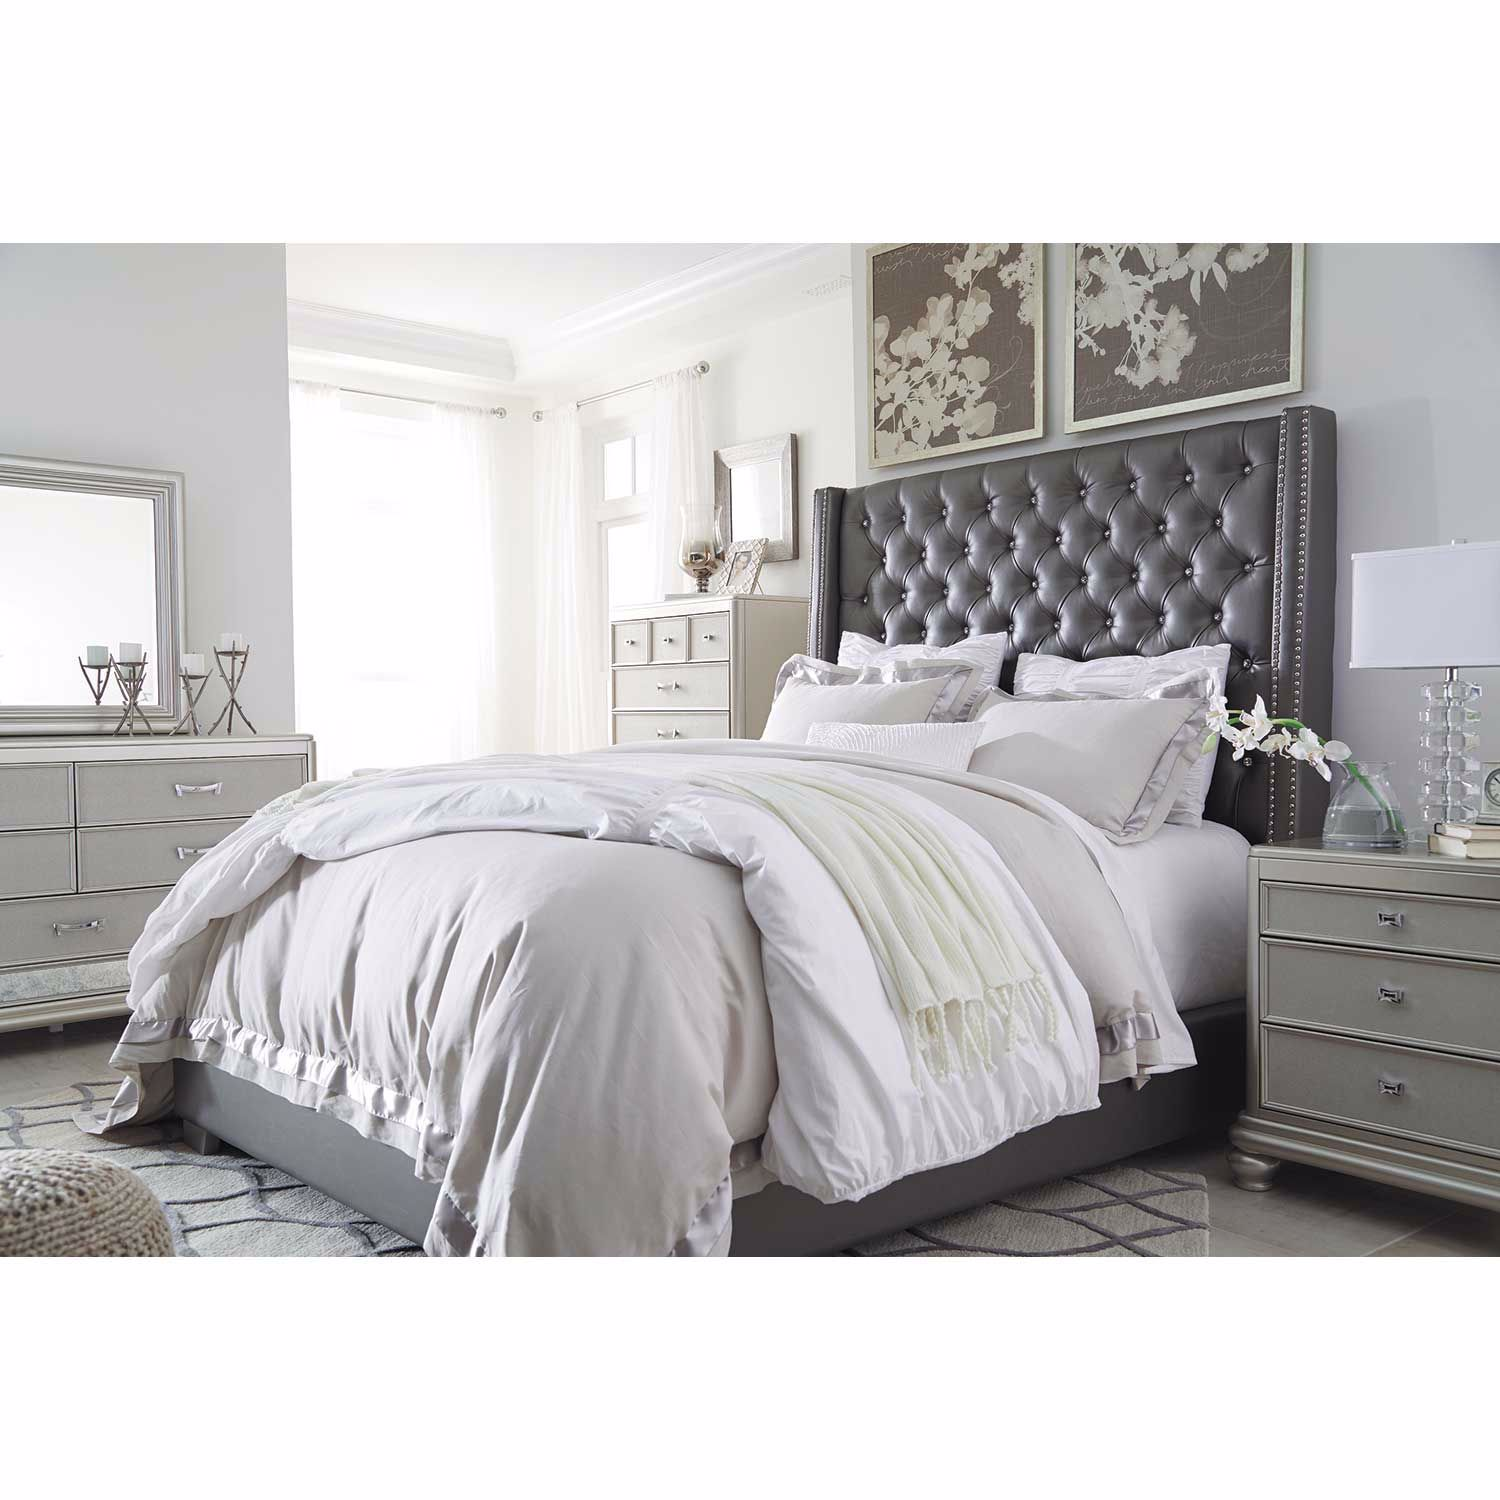 Picture of Coralayne Upholstered Queen Bed